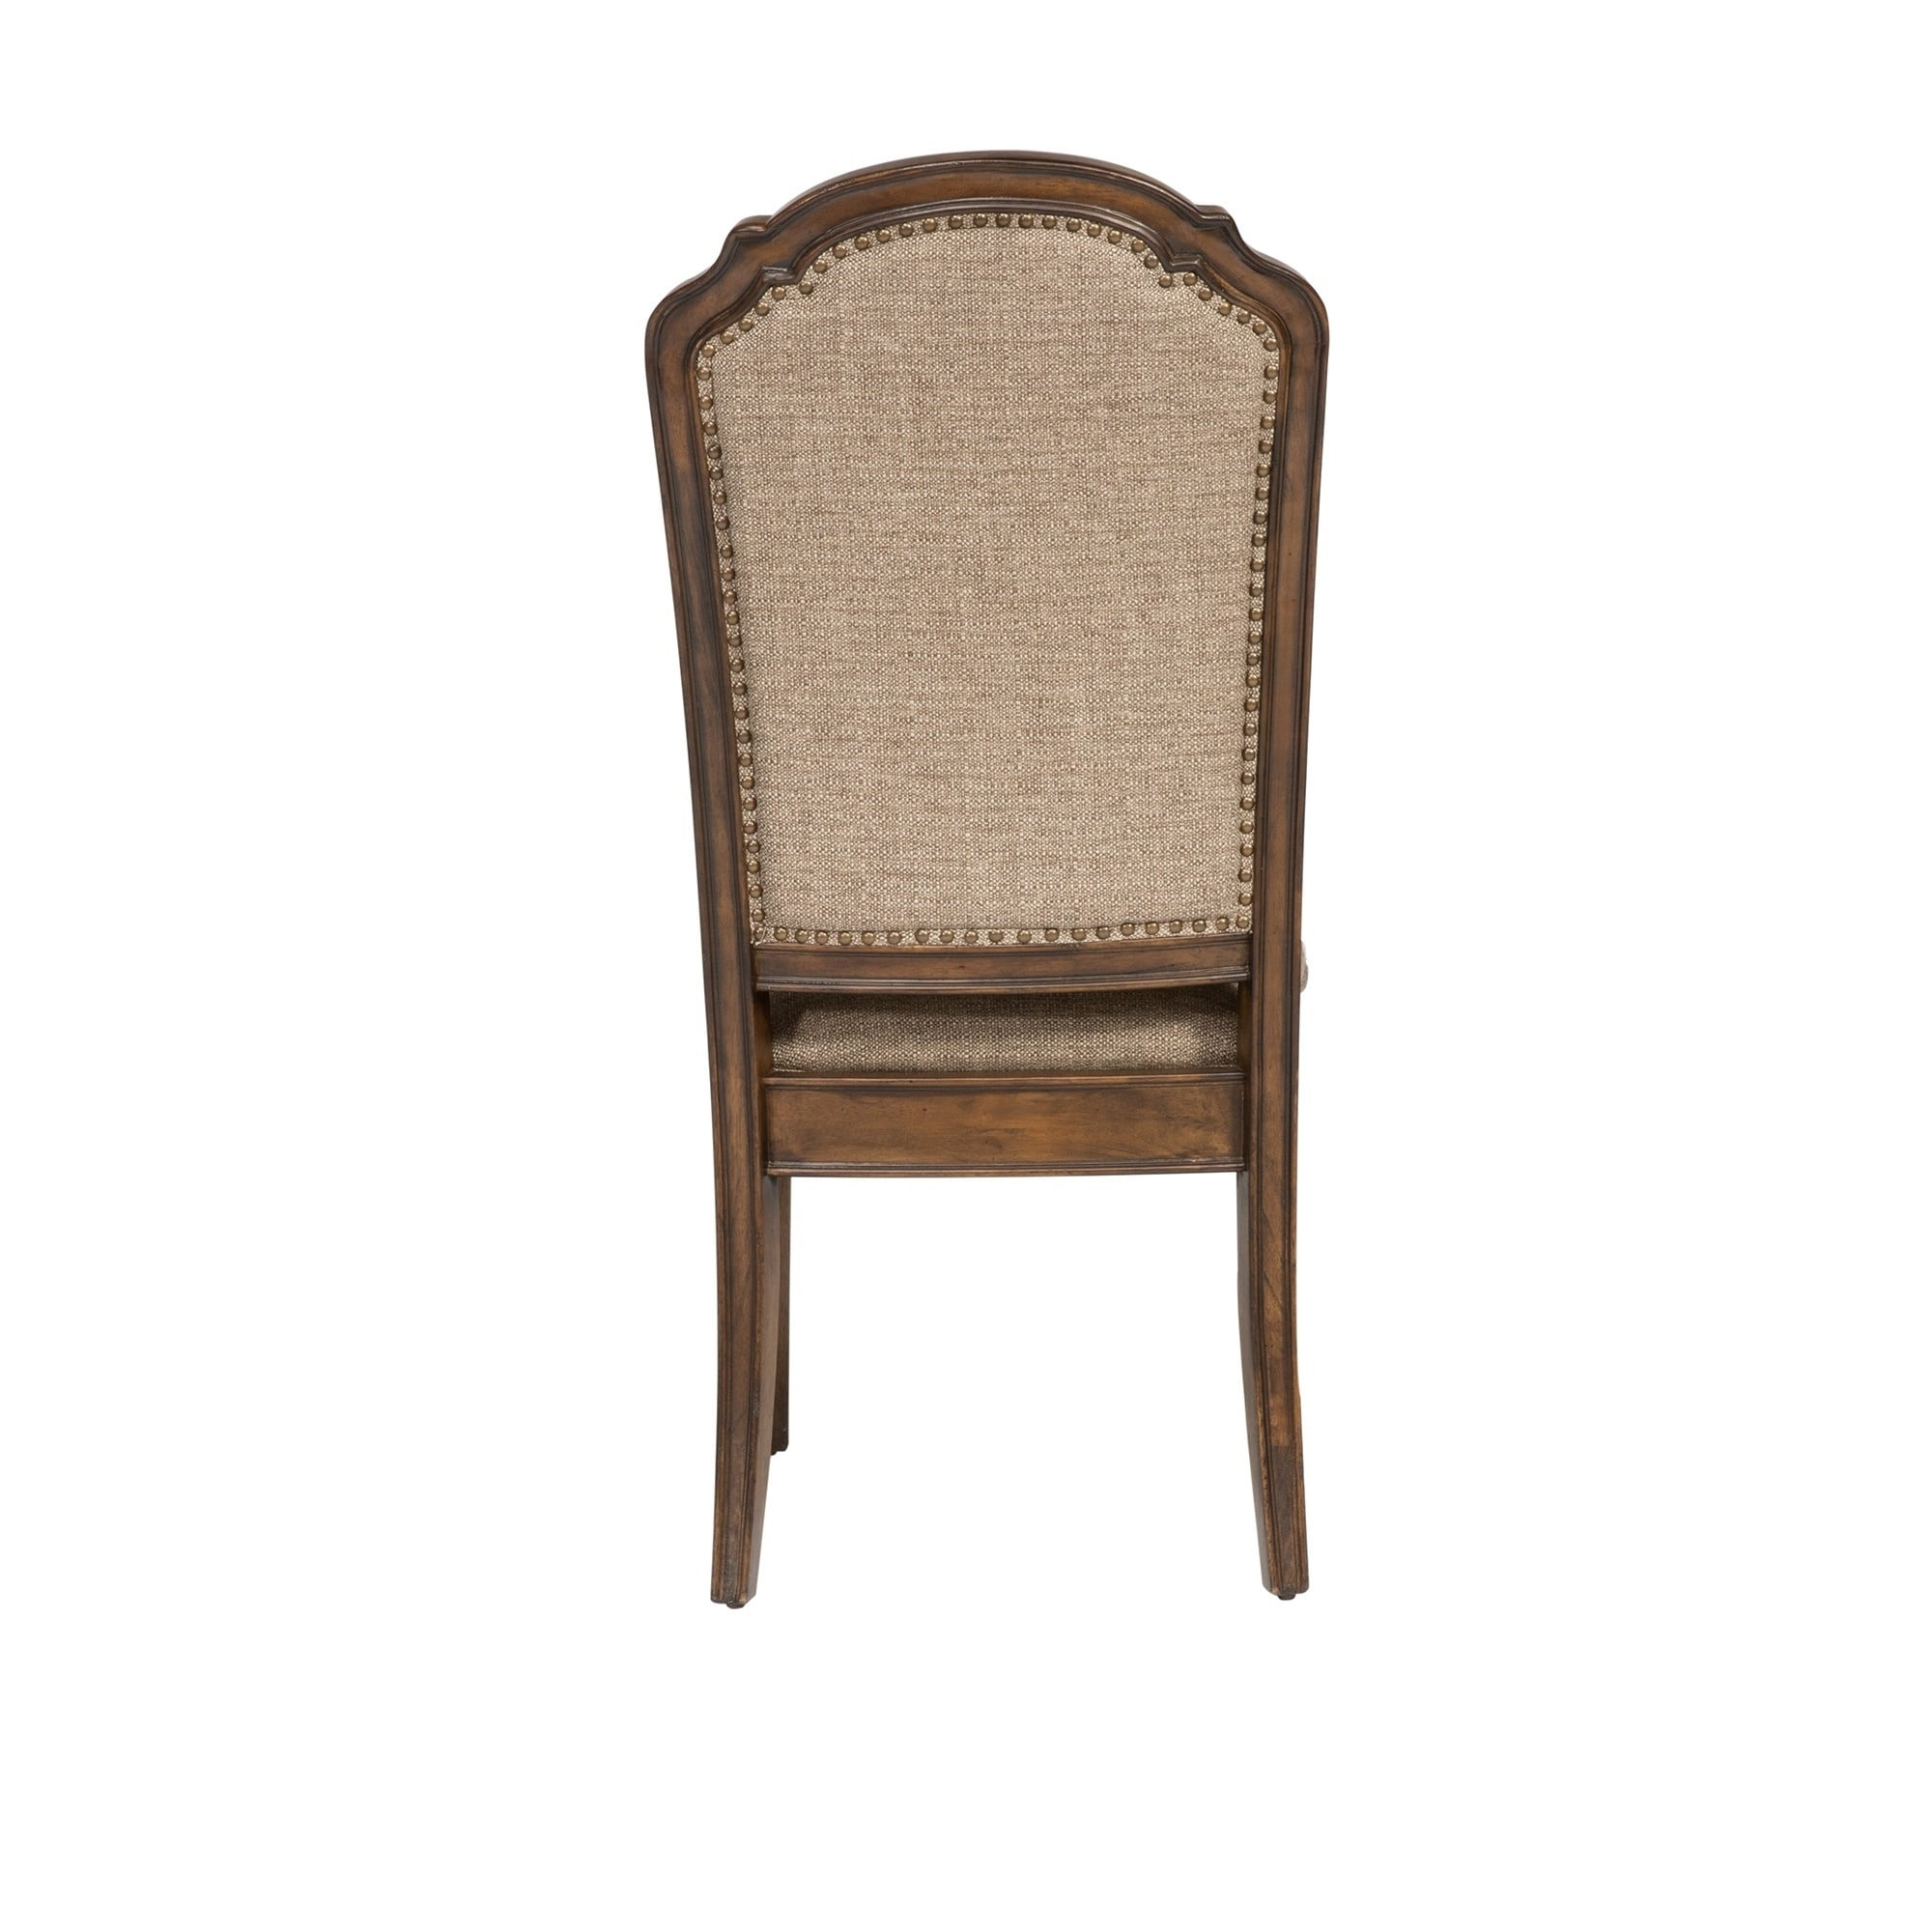 Shop Amelia Antique Toffee Tufted Back Upholstered Dining Chair